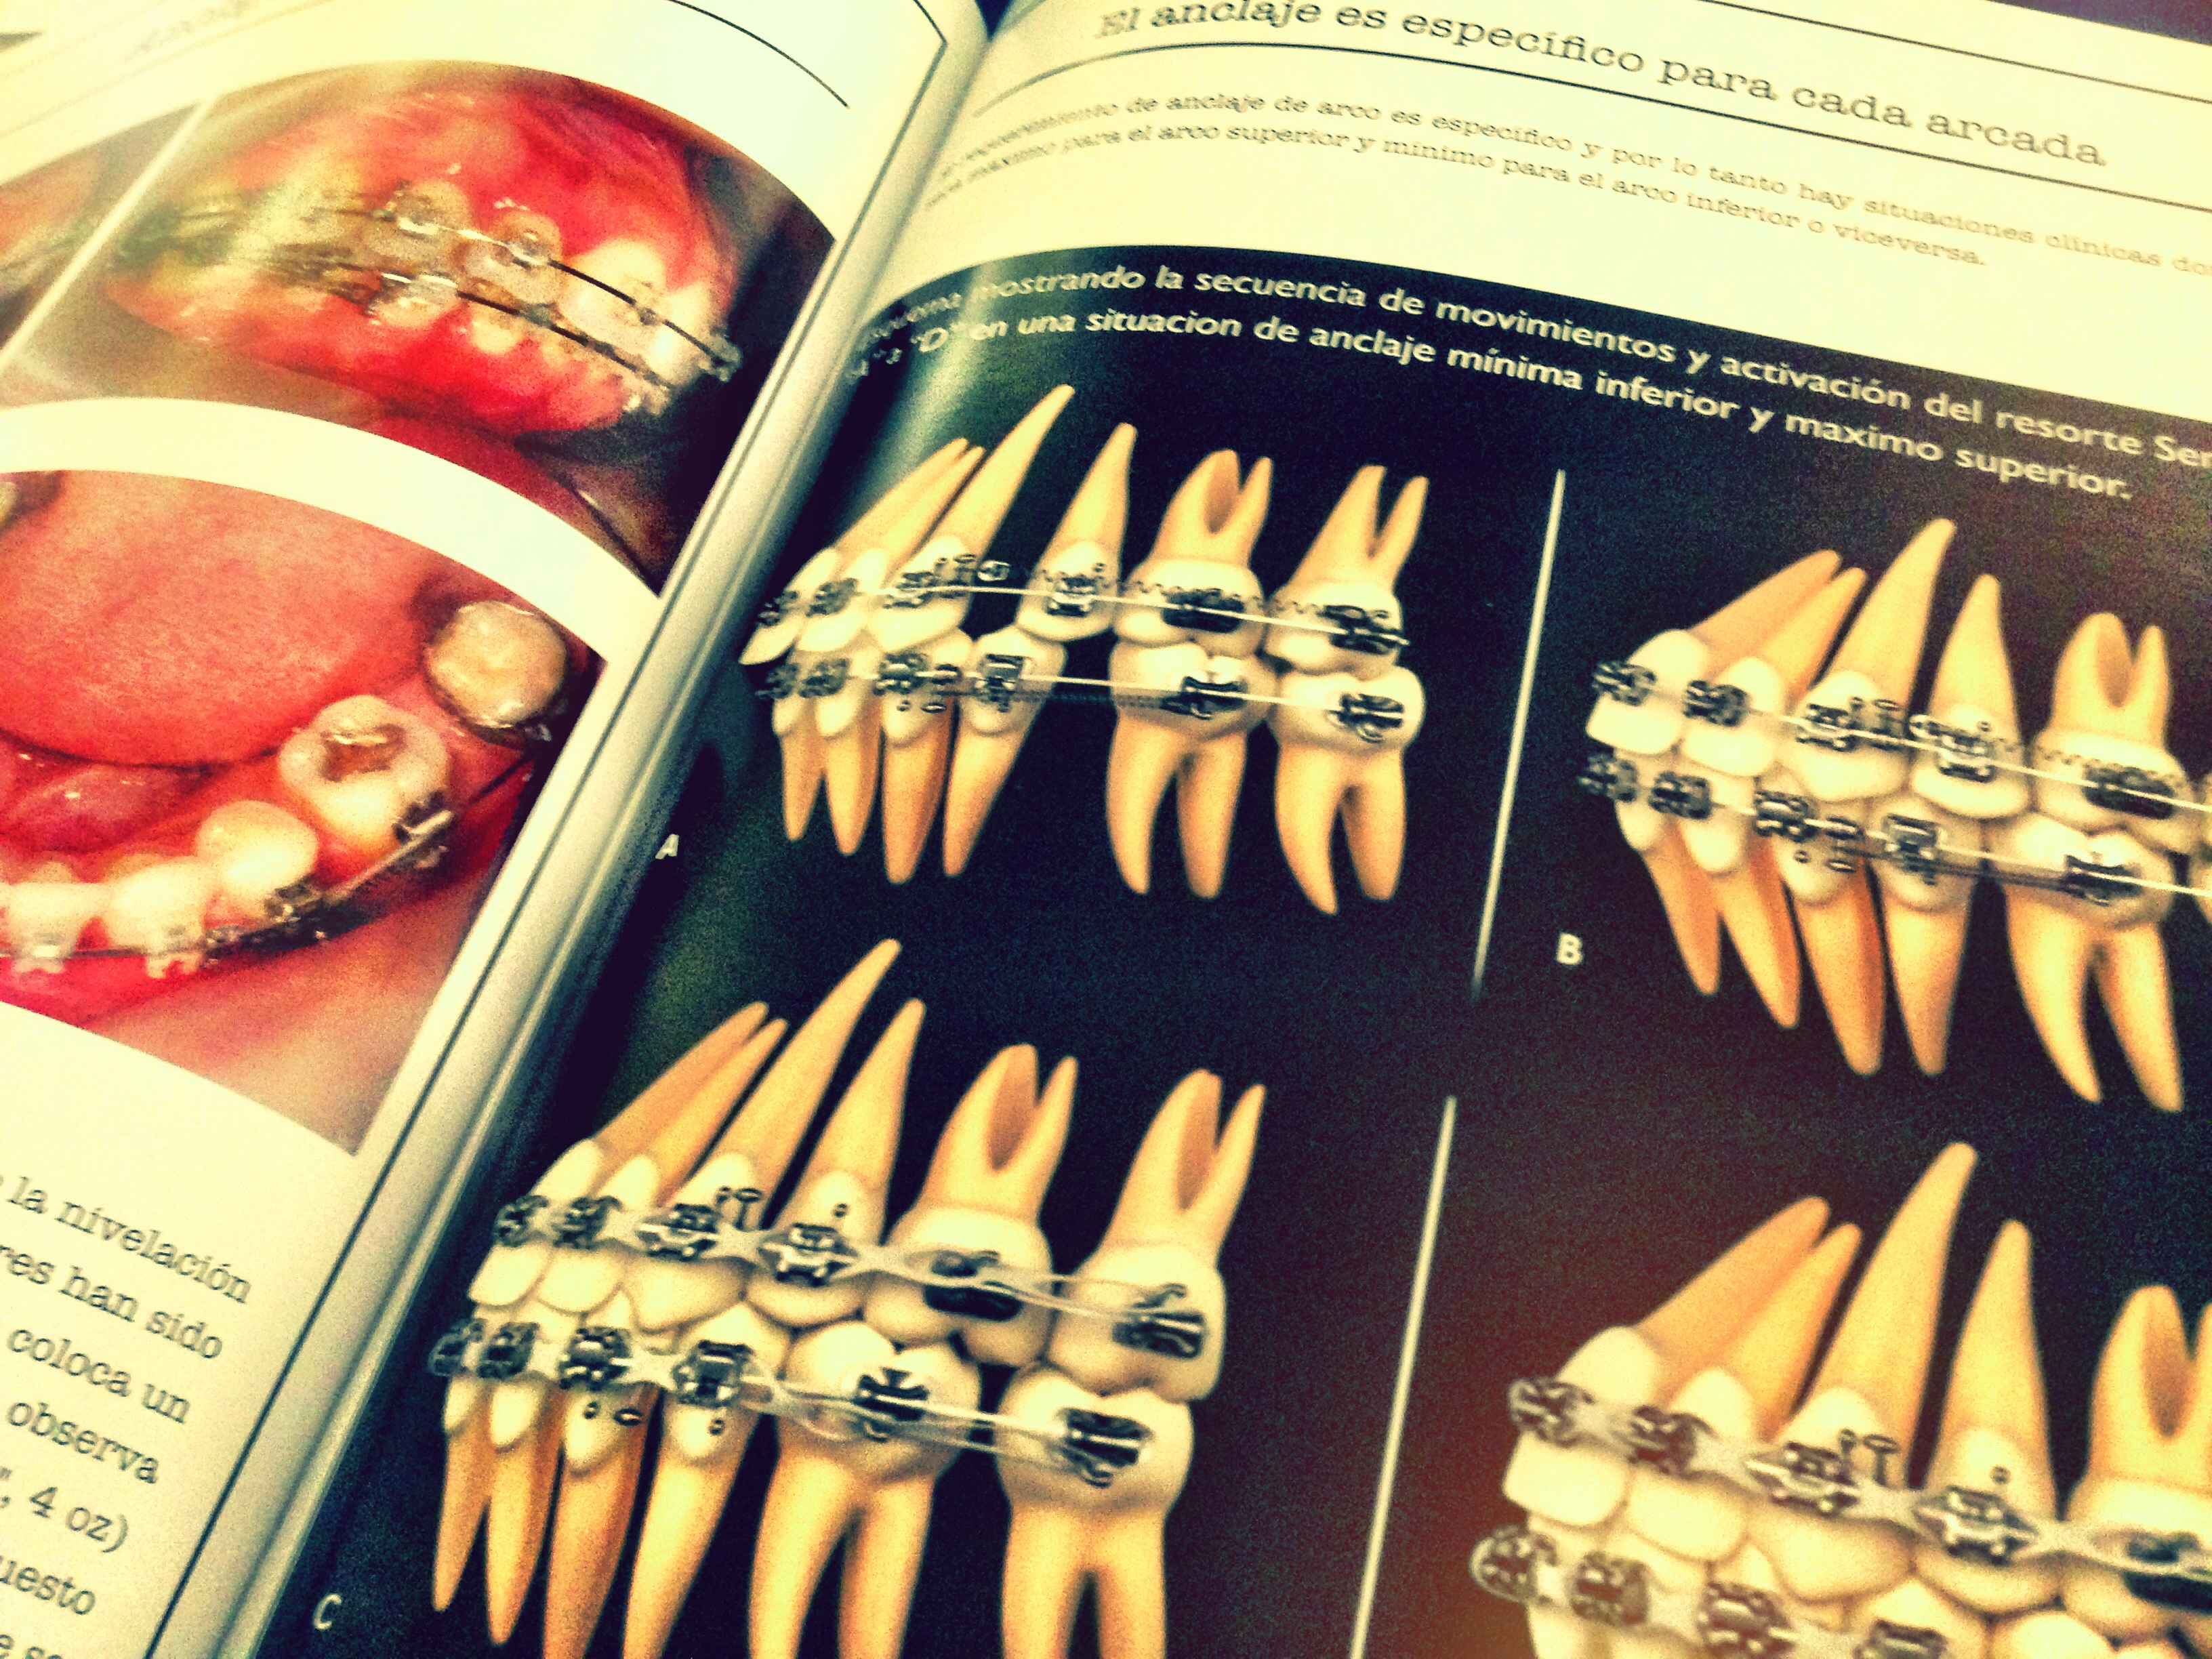 Reseña del libro Complete Clinical Orthodontic (Antonino G. Secchi)